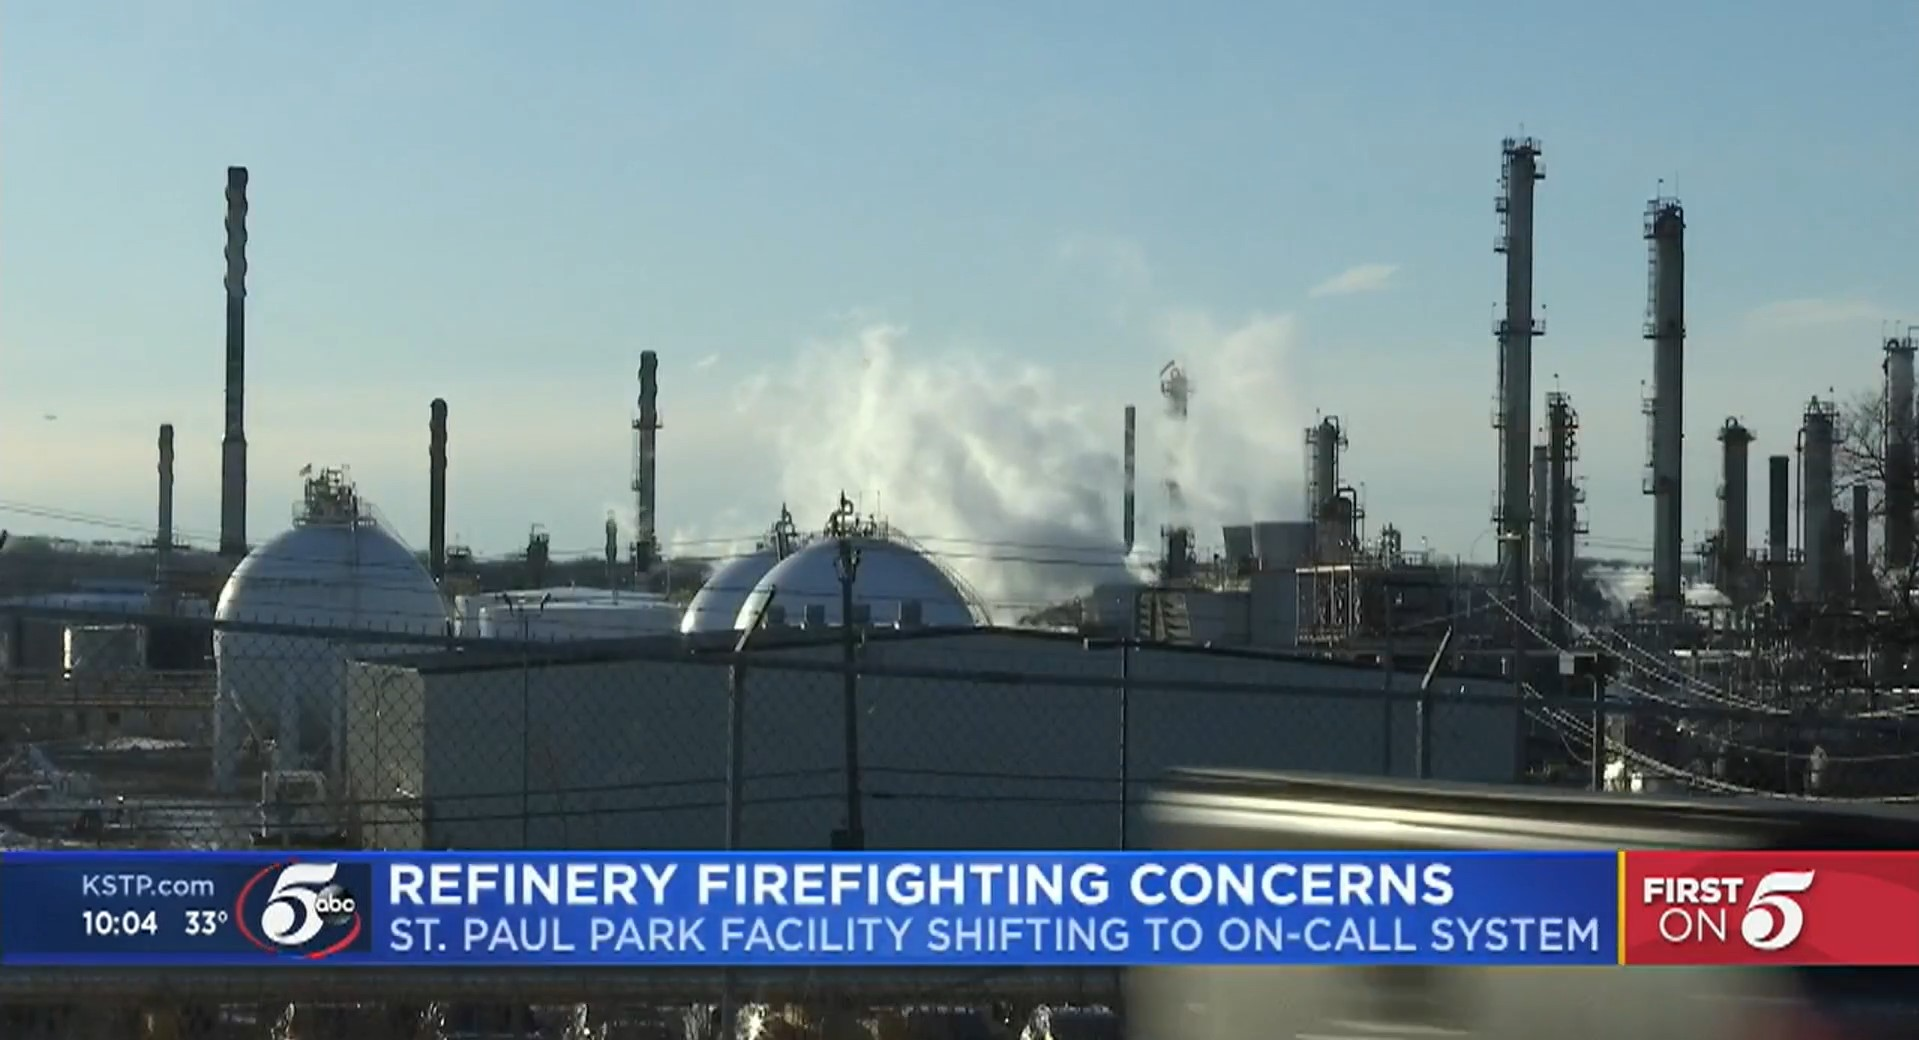 Minnesota Refinery Transitions to Staff Fire Brigade